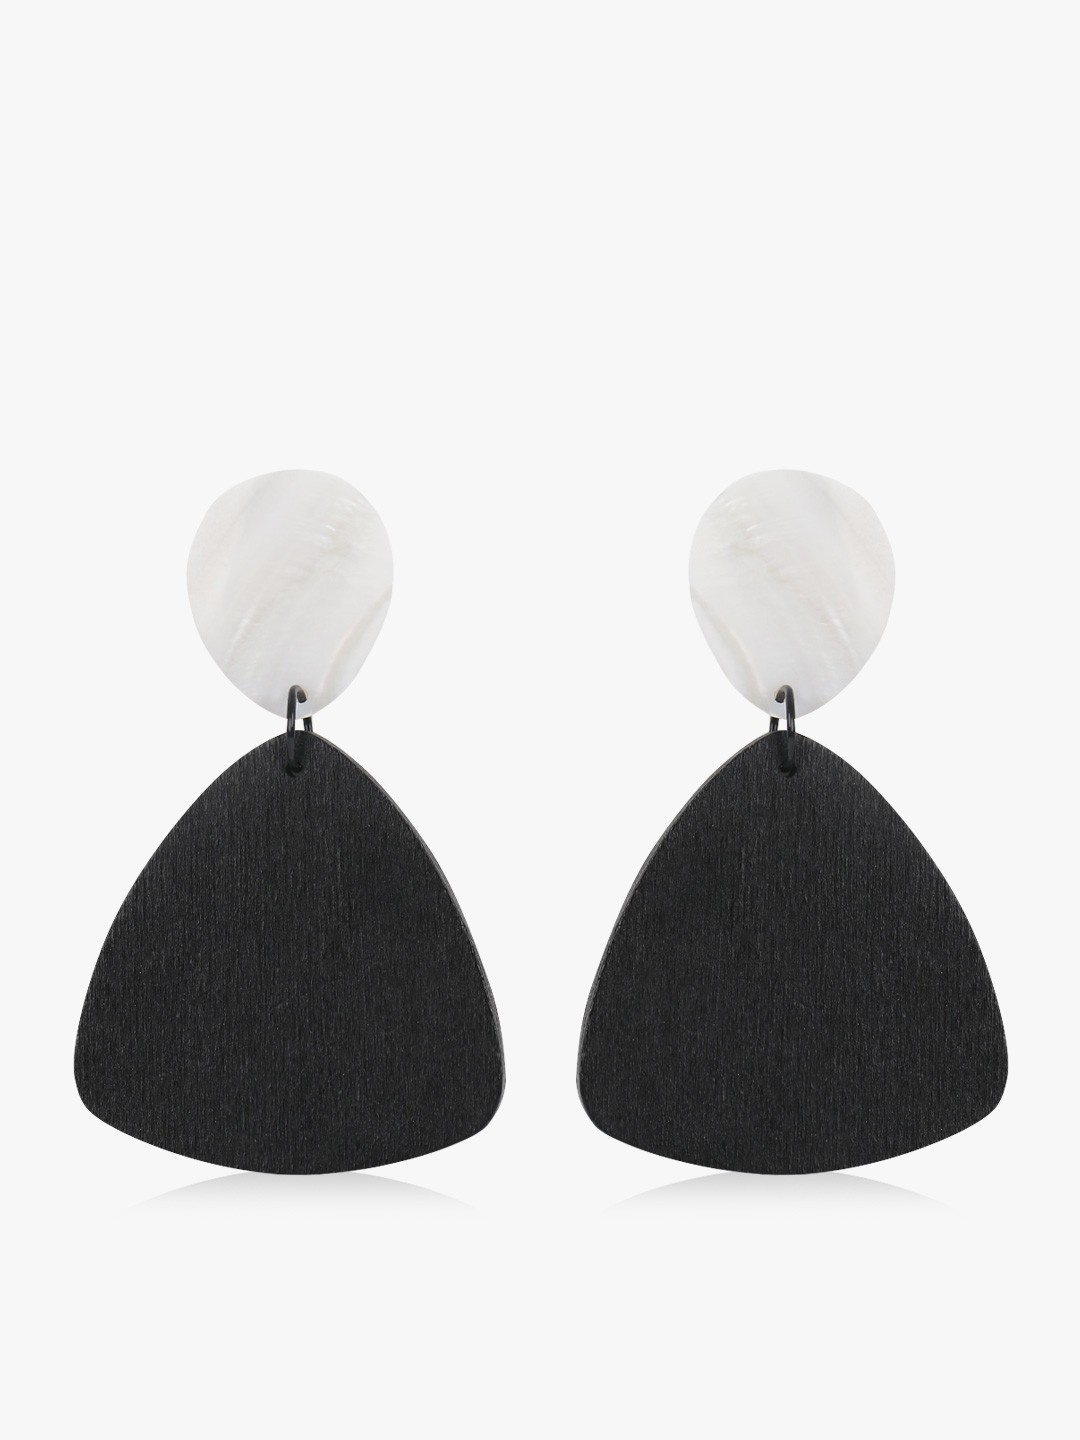 Style Fiesta Black Colour Block Geometric Earrings 1